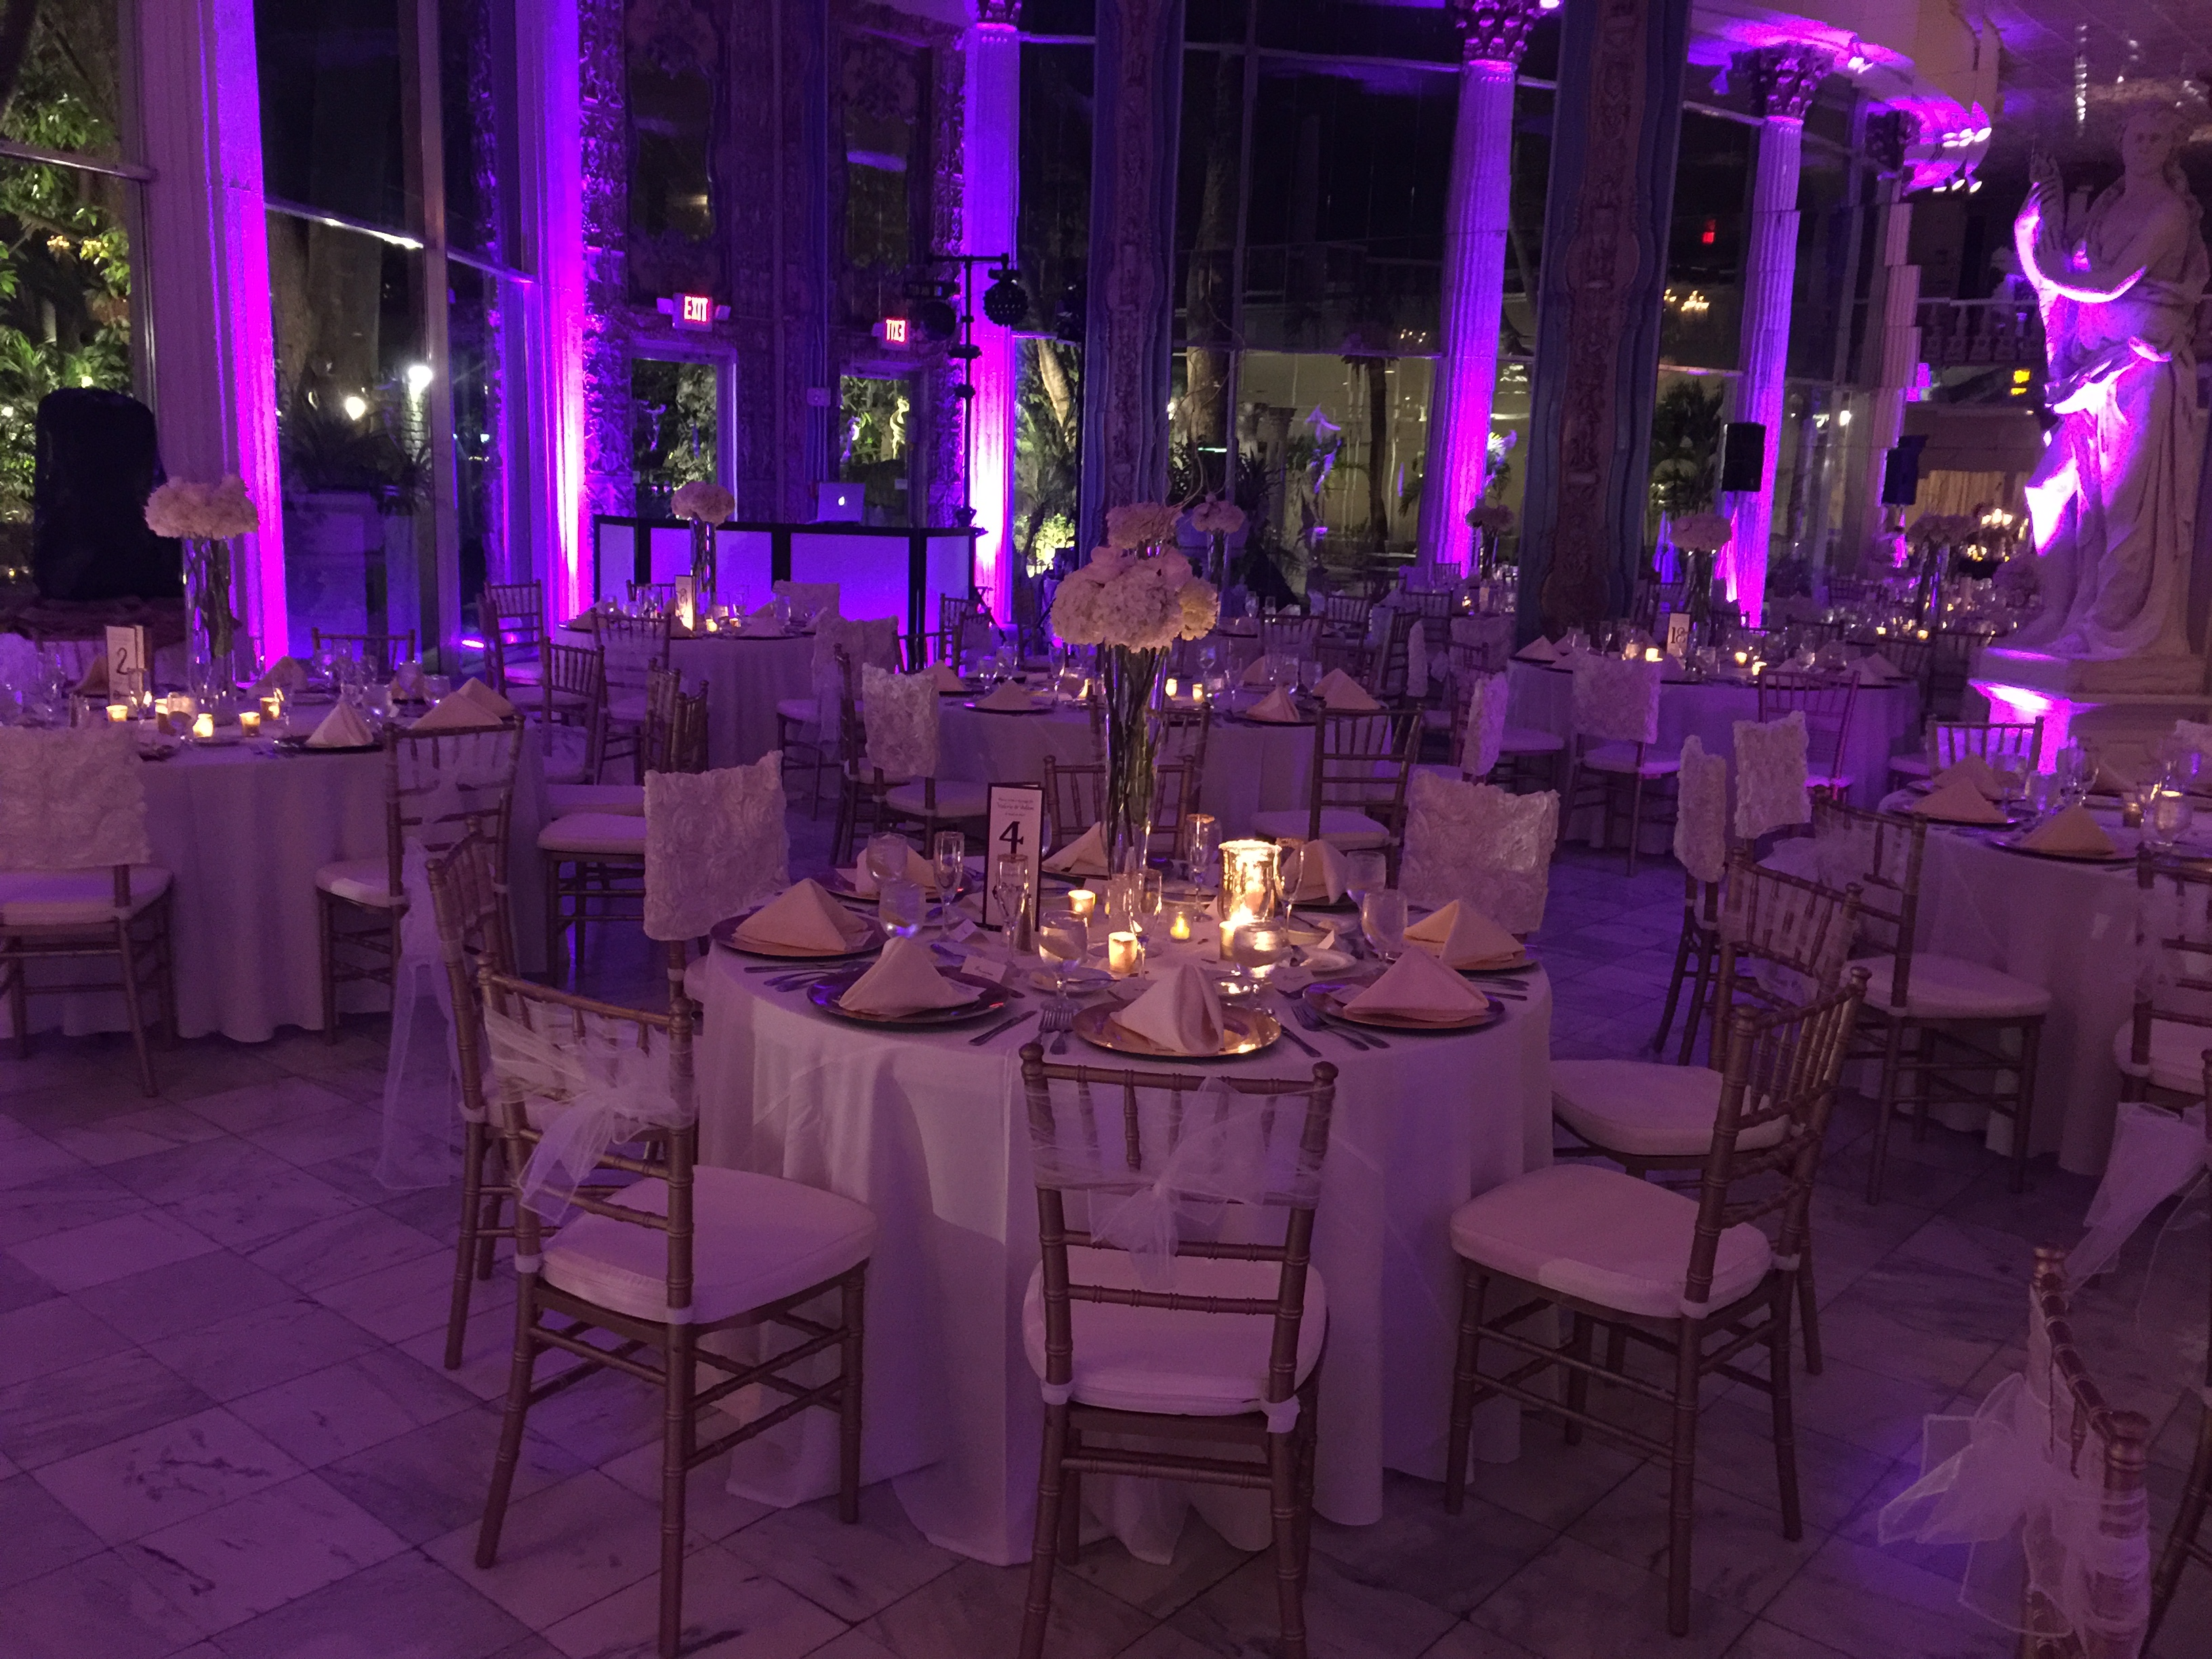 Round Table Settings with Dimmed Lights